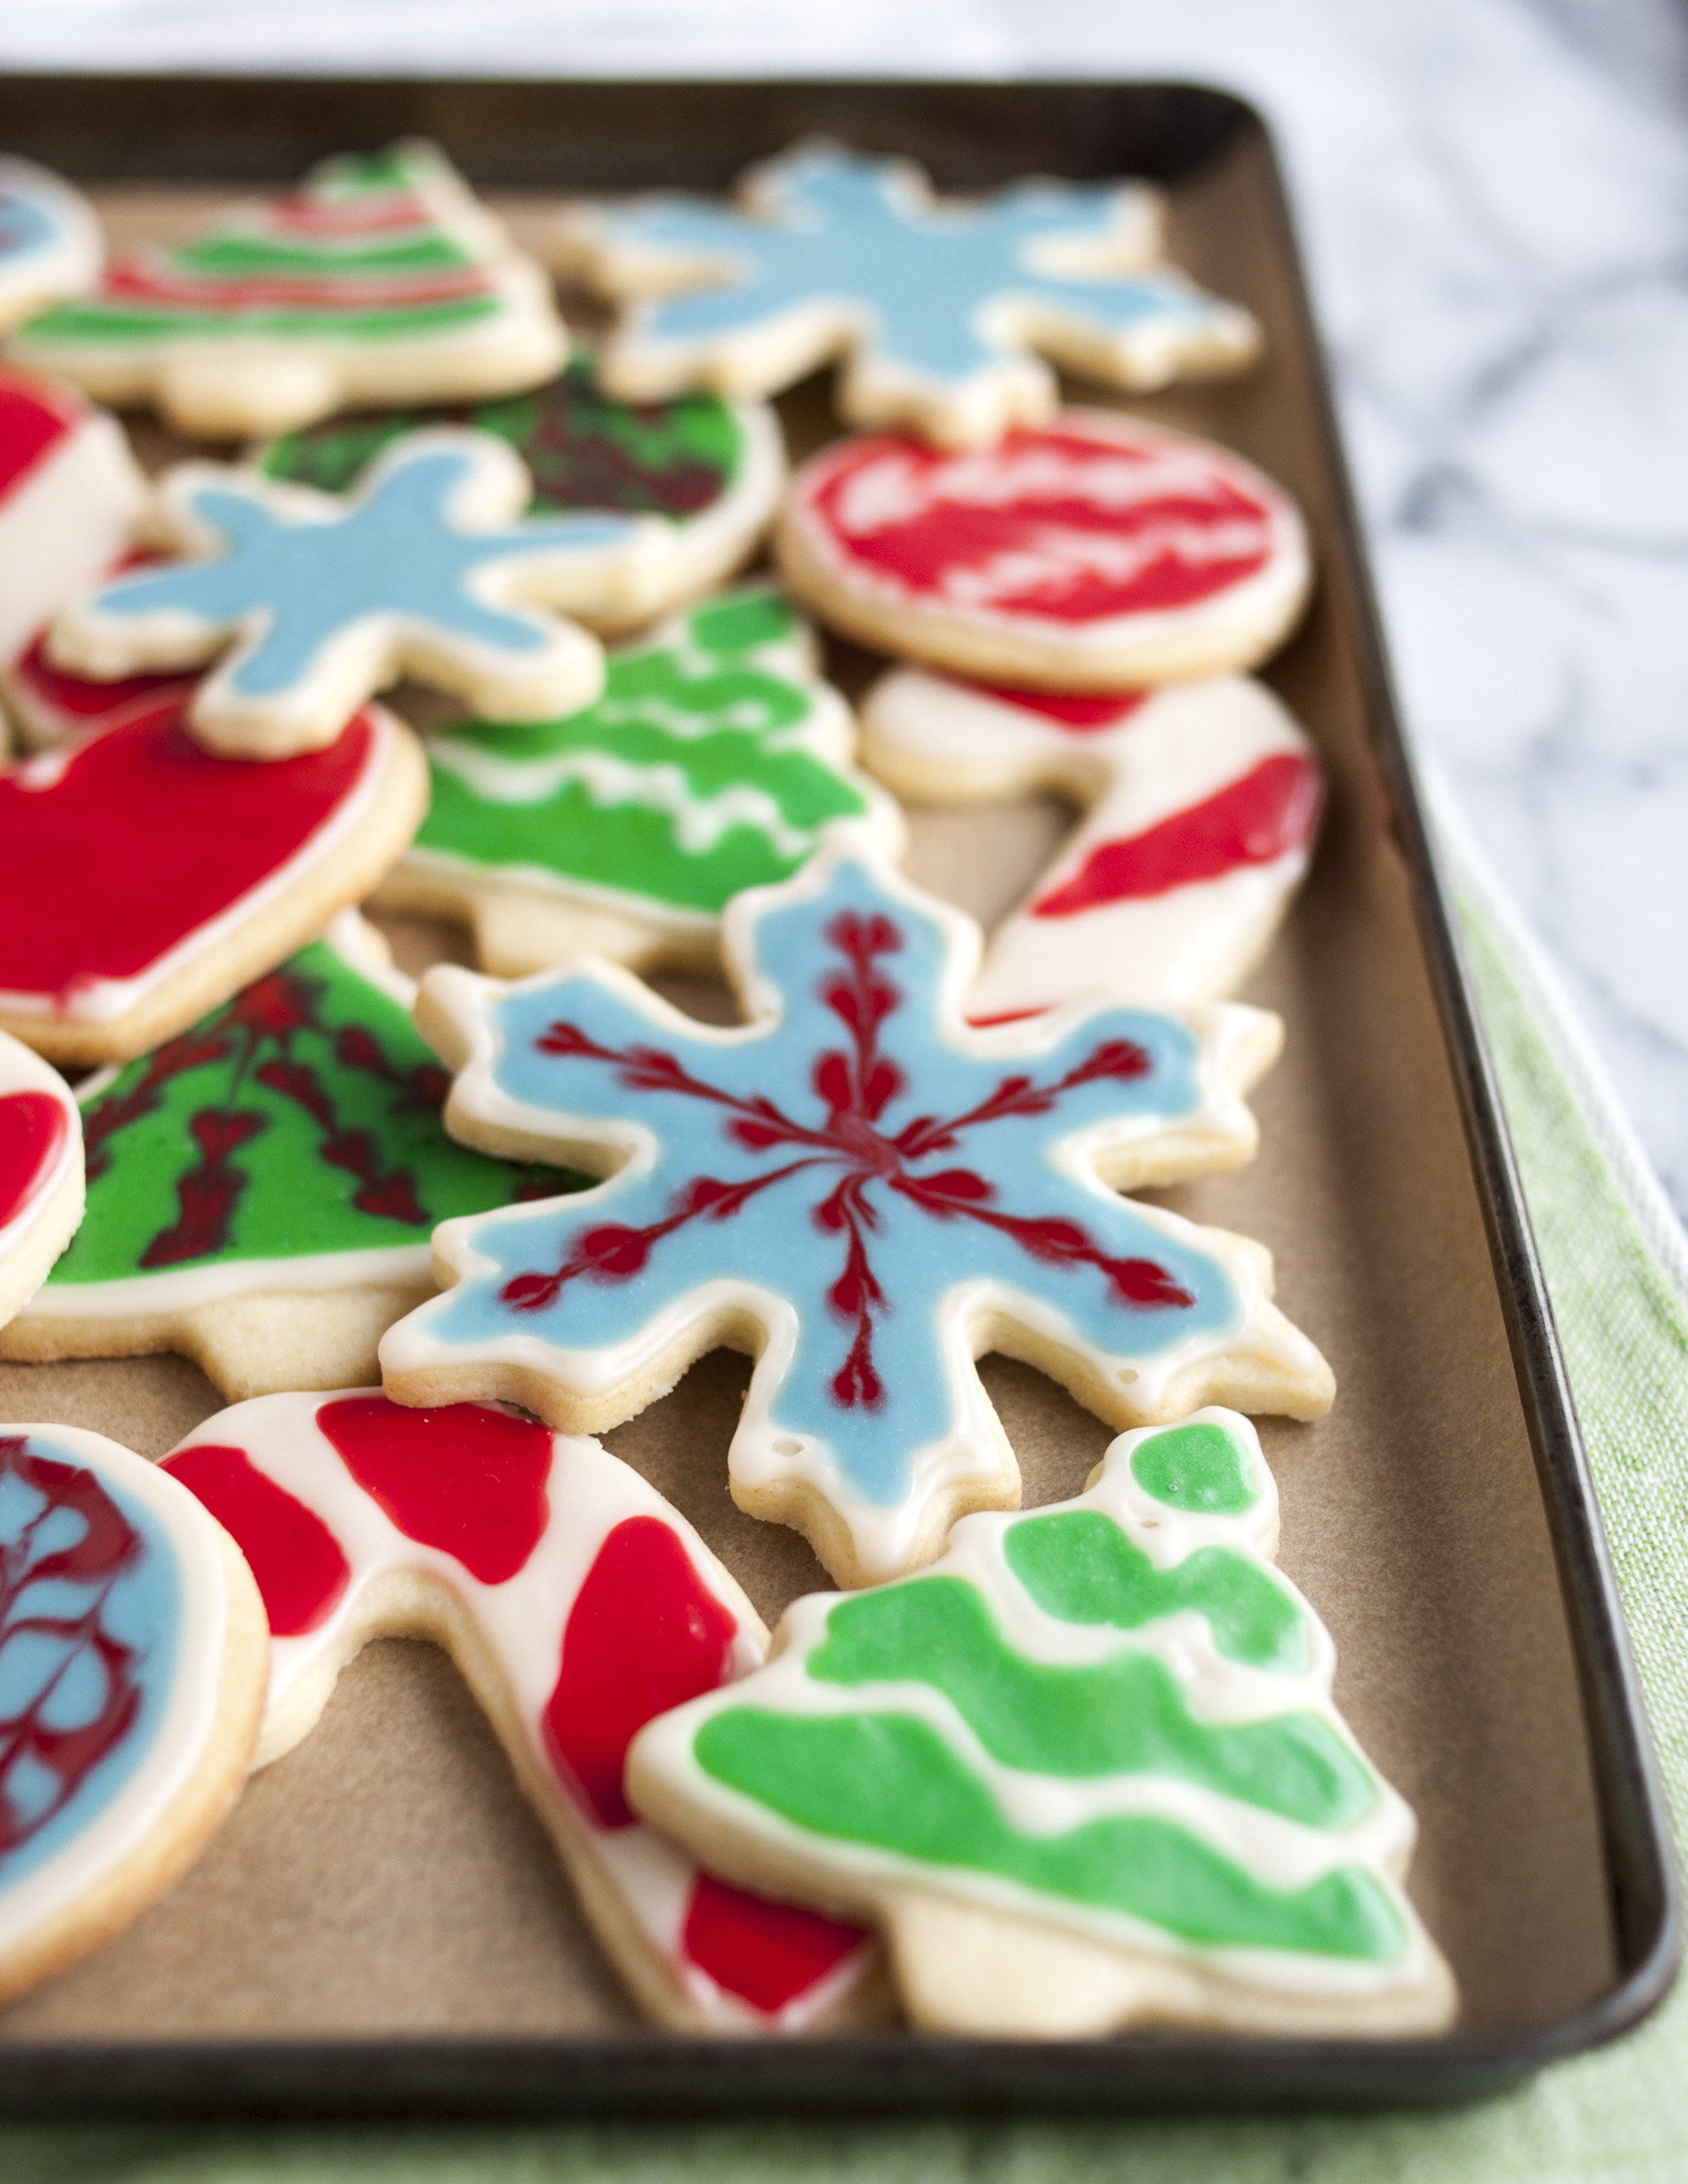 How To Decorate Cookies with Icing: The Simplest, Easiest Method | Kitchn